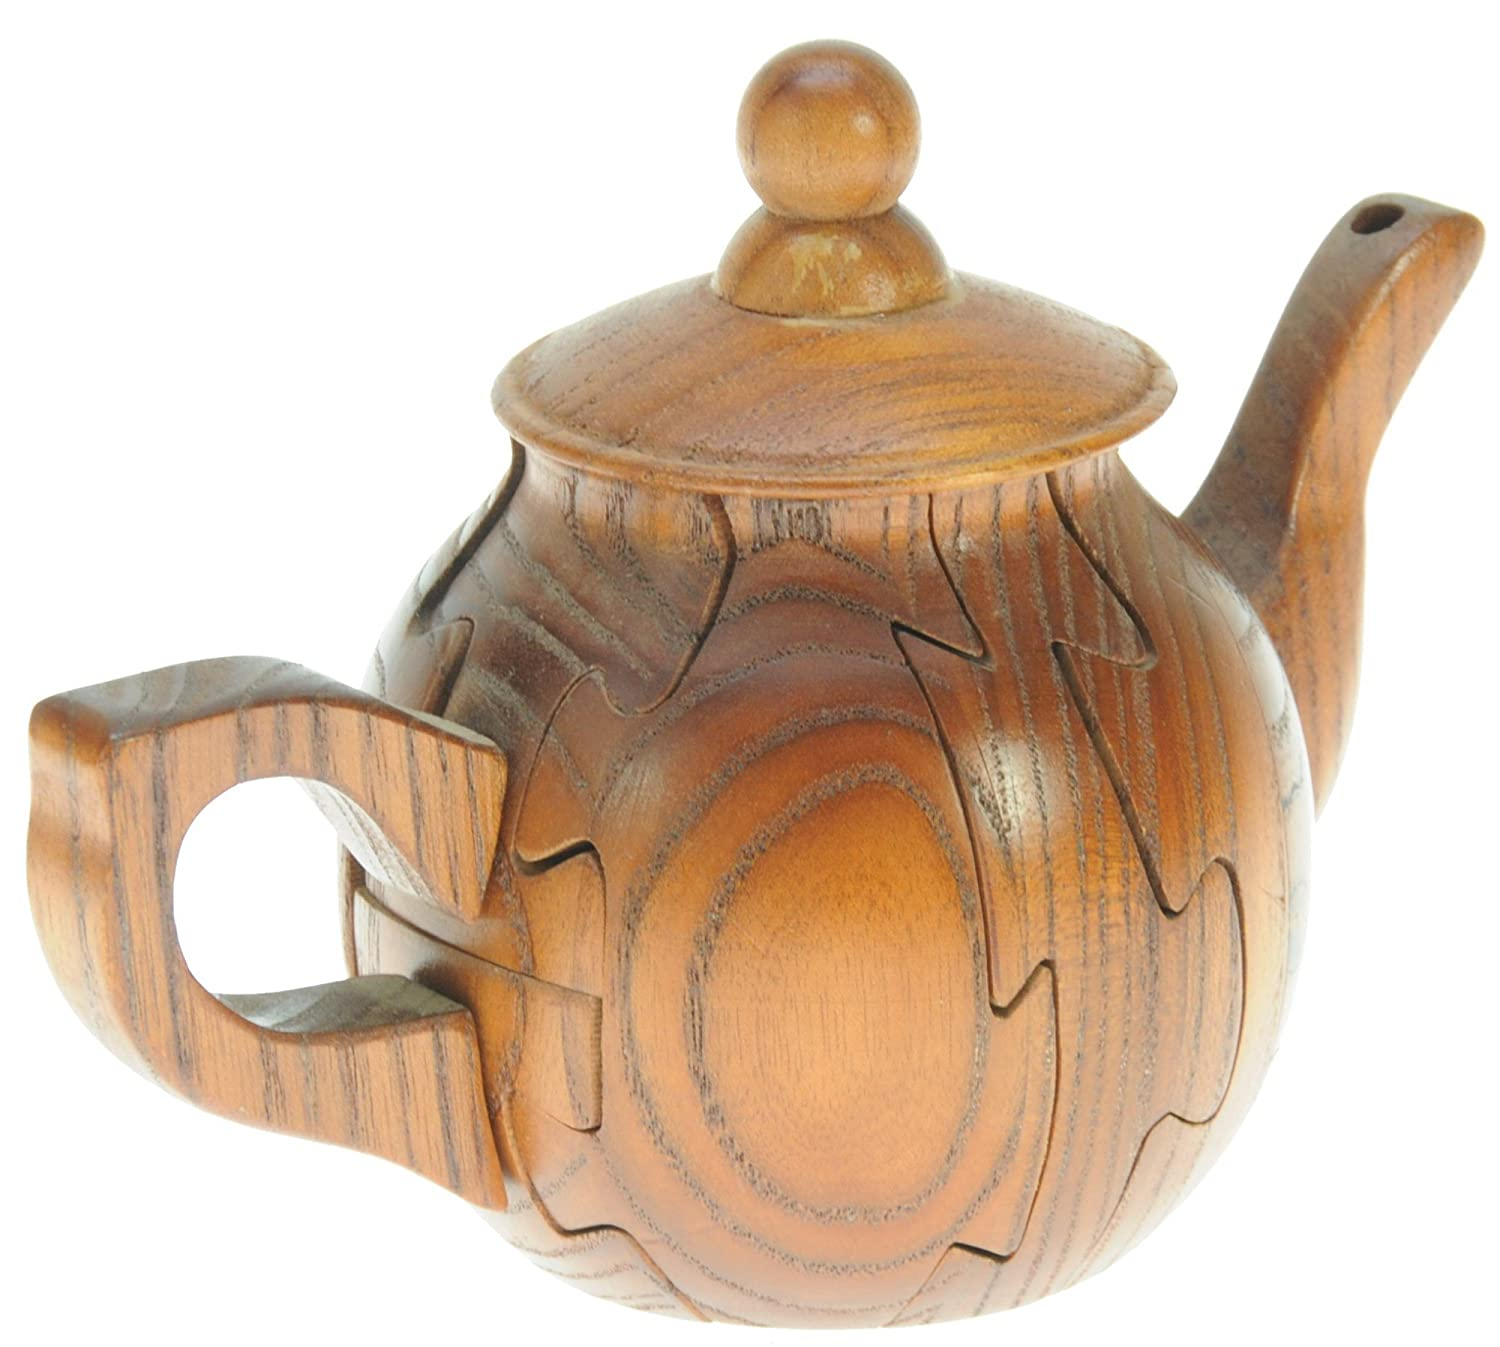 Namesakes Teapot 3D Jigsaw Puzzle : Novelty Birthday Present for Grown Ups & Tea Drinkers All My Gift Ideas